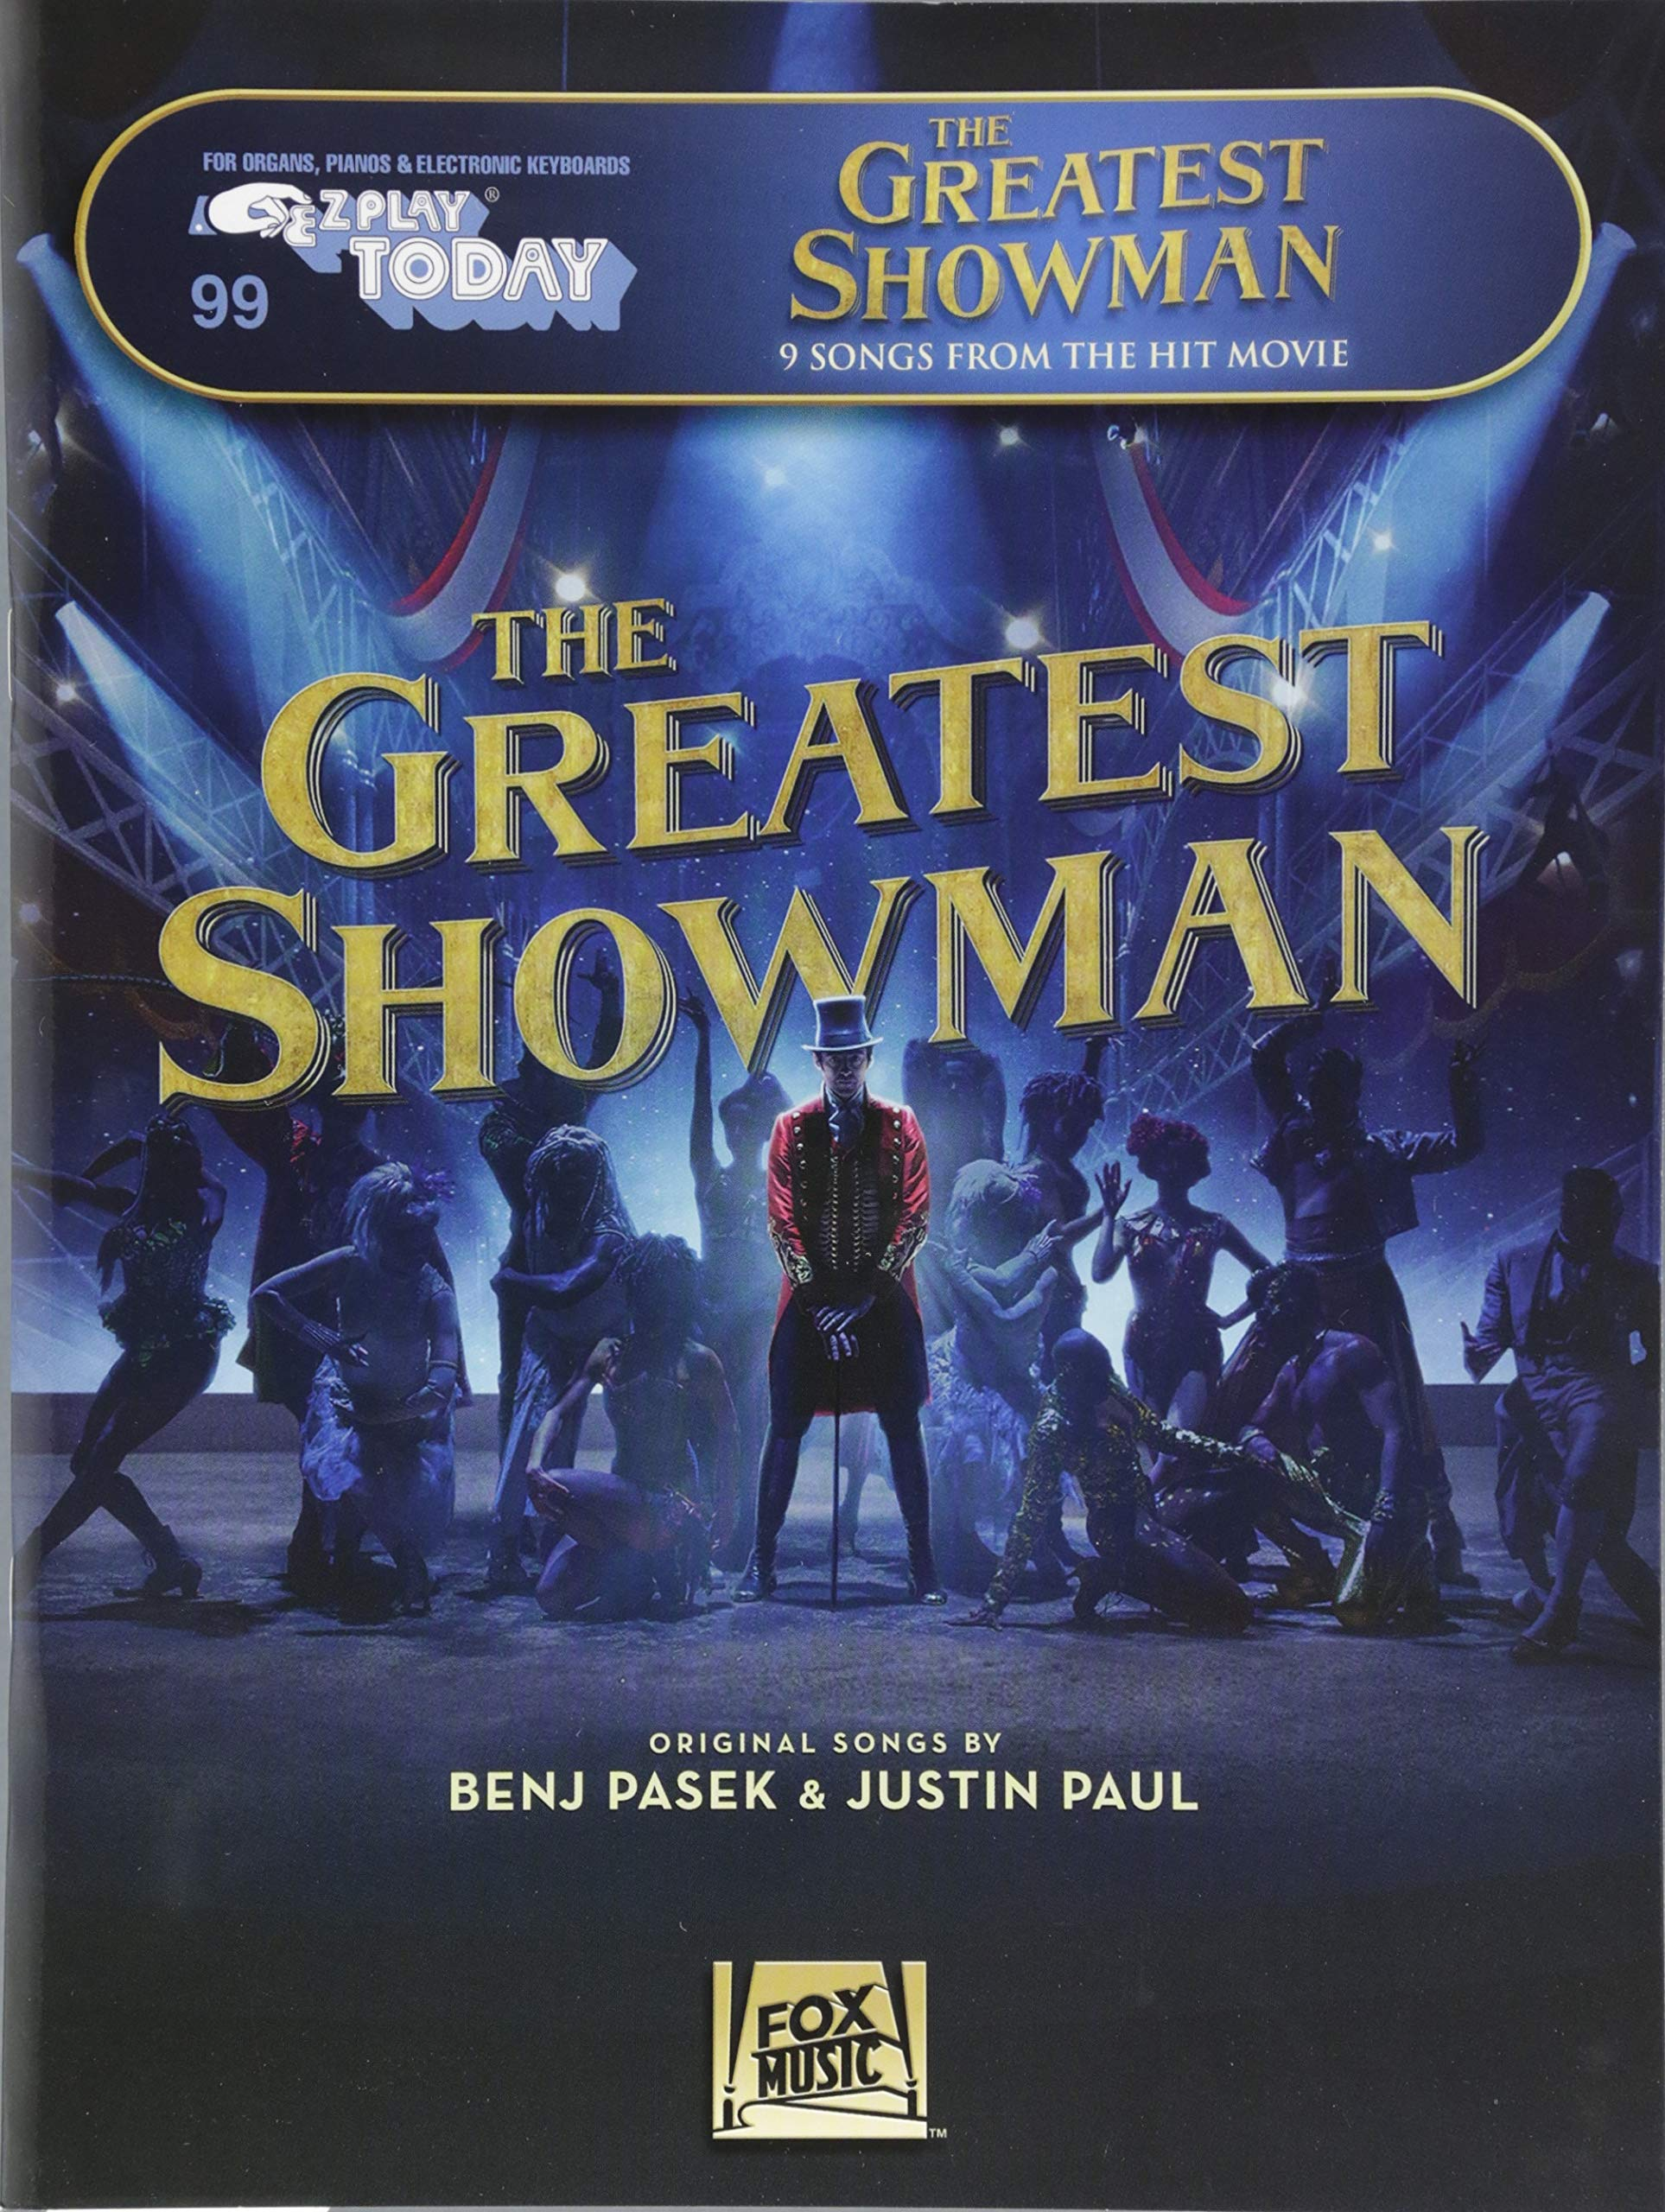 The Greatest Showman: E-Z Play Today #99: Benj Pasek, Justin